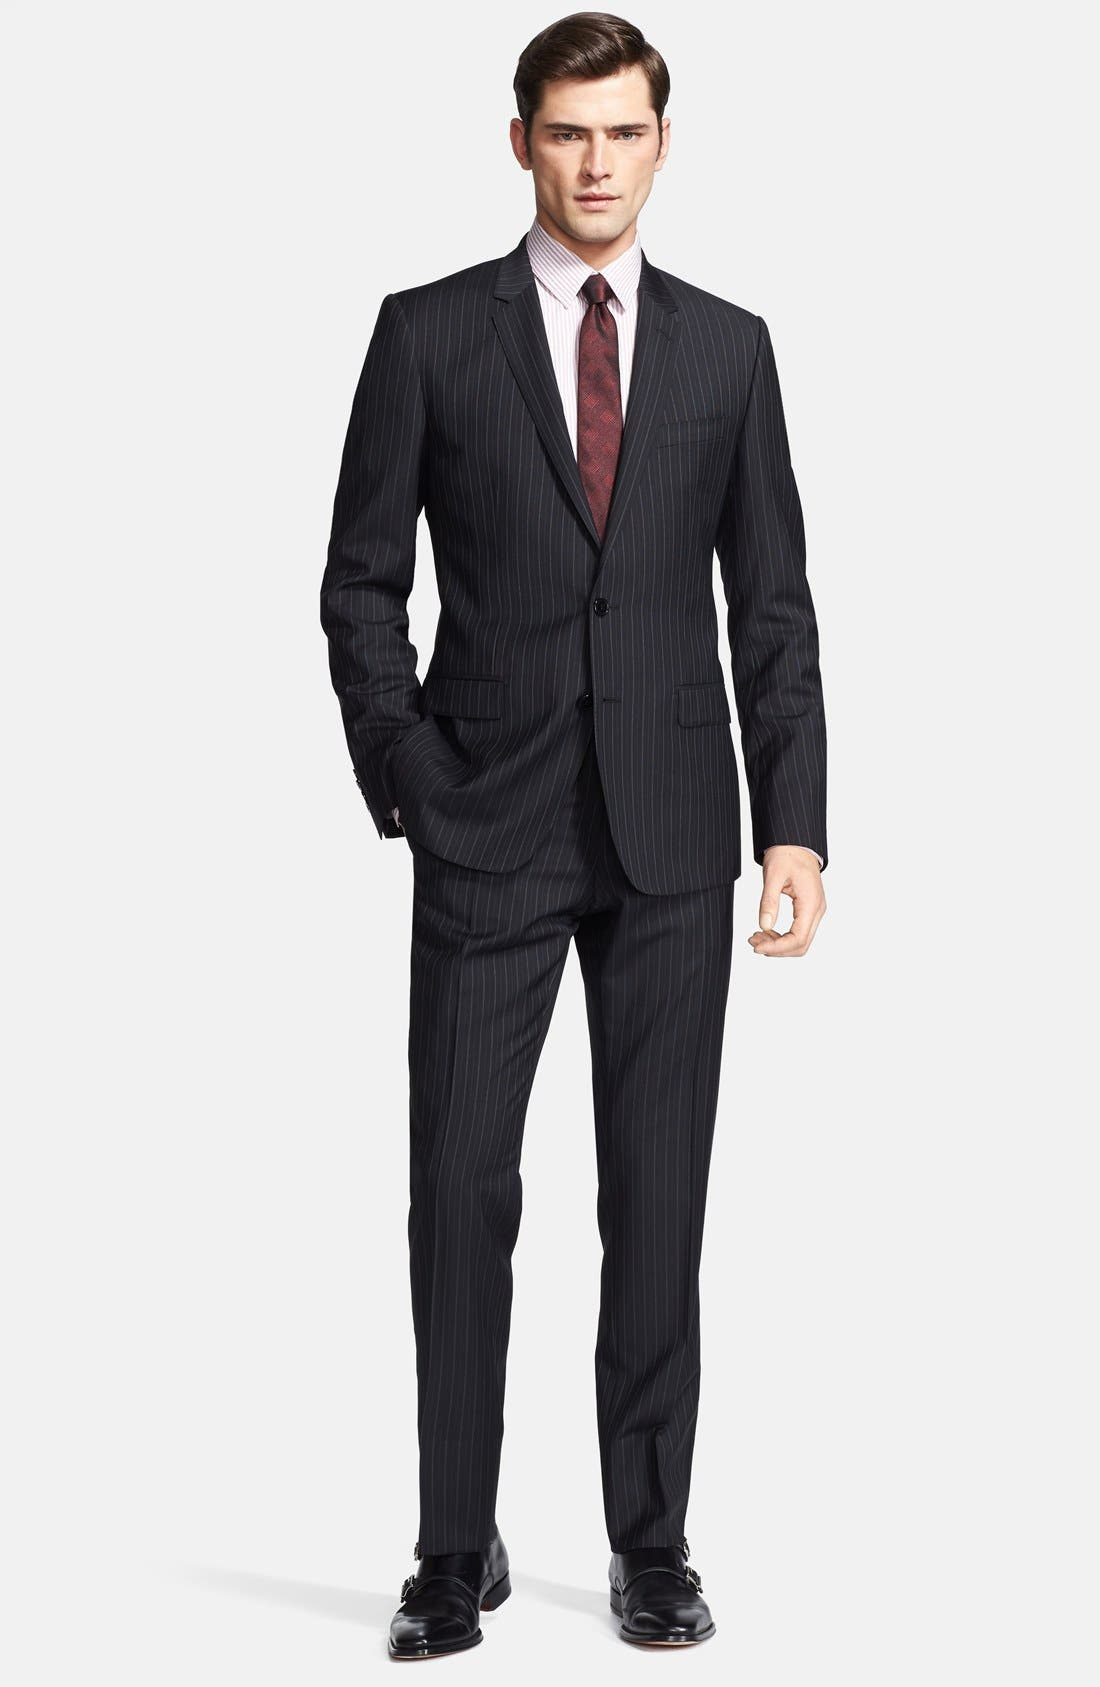 Main Image - Dolce&Gabbana 'Martini' Black Stripe Wool Suit